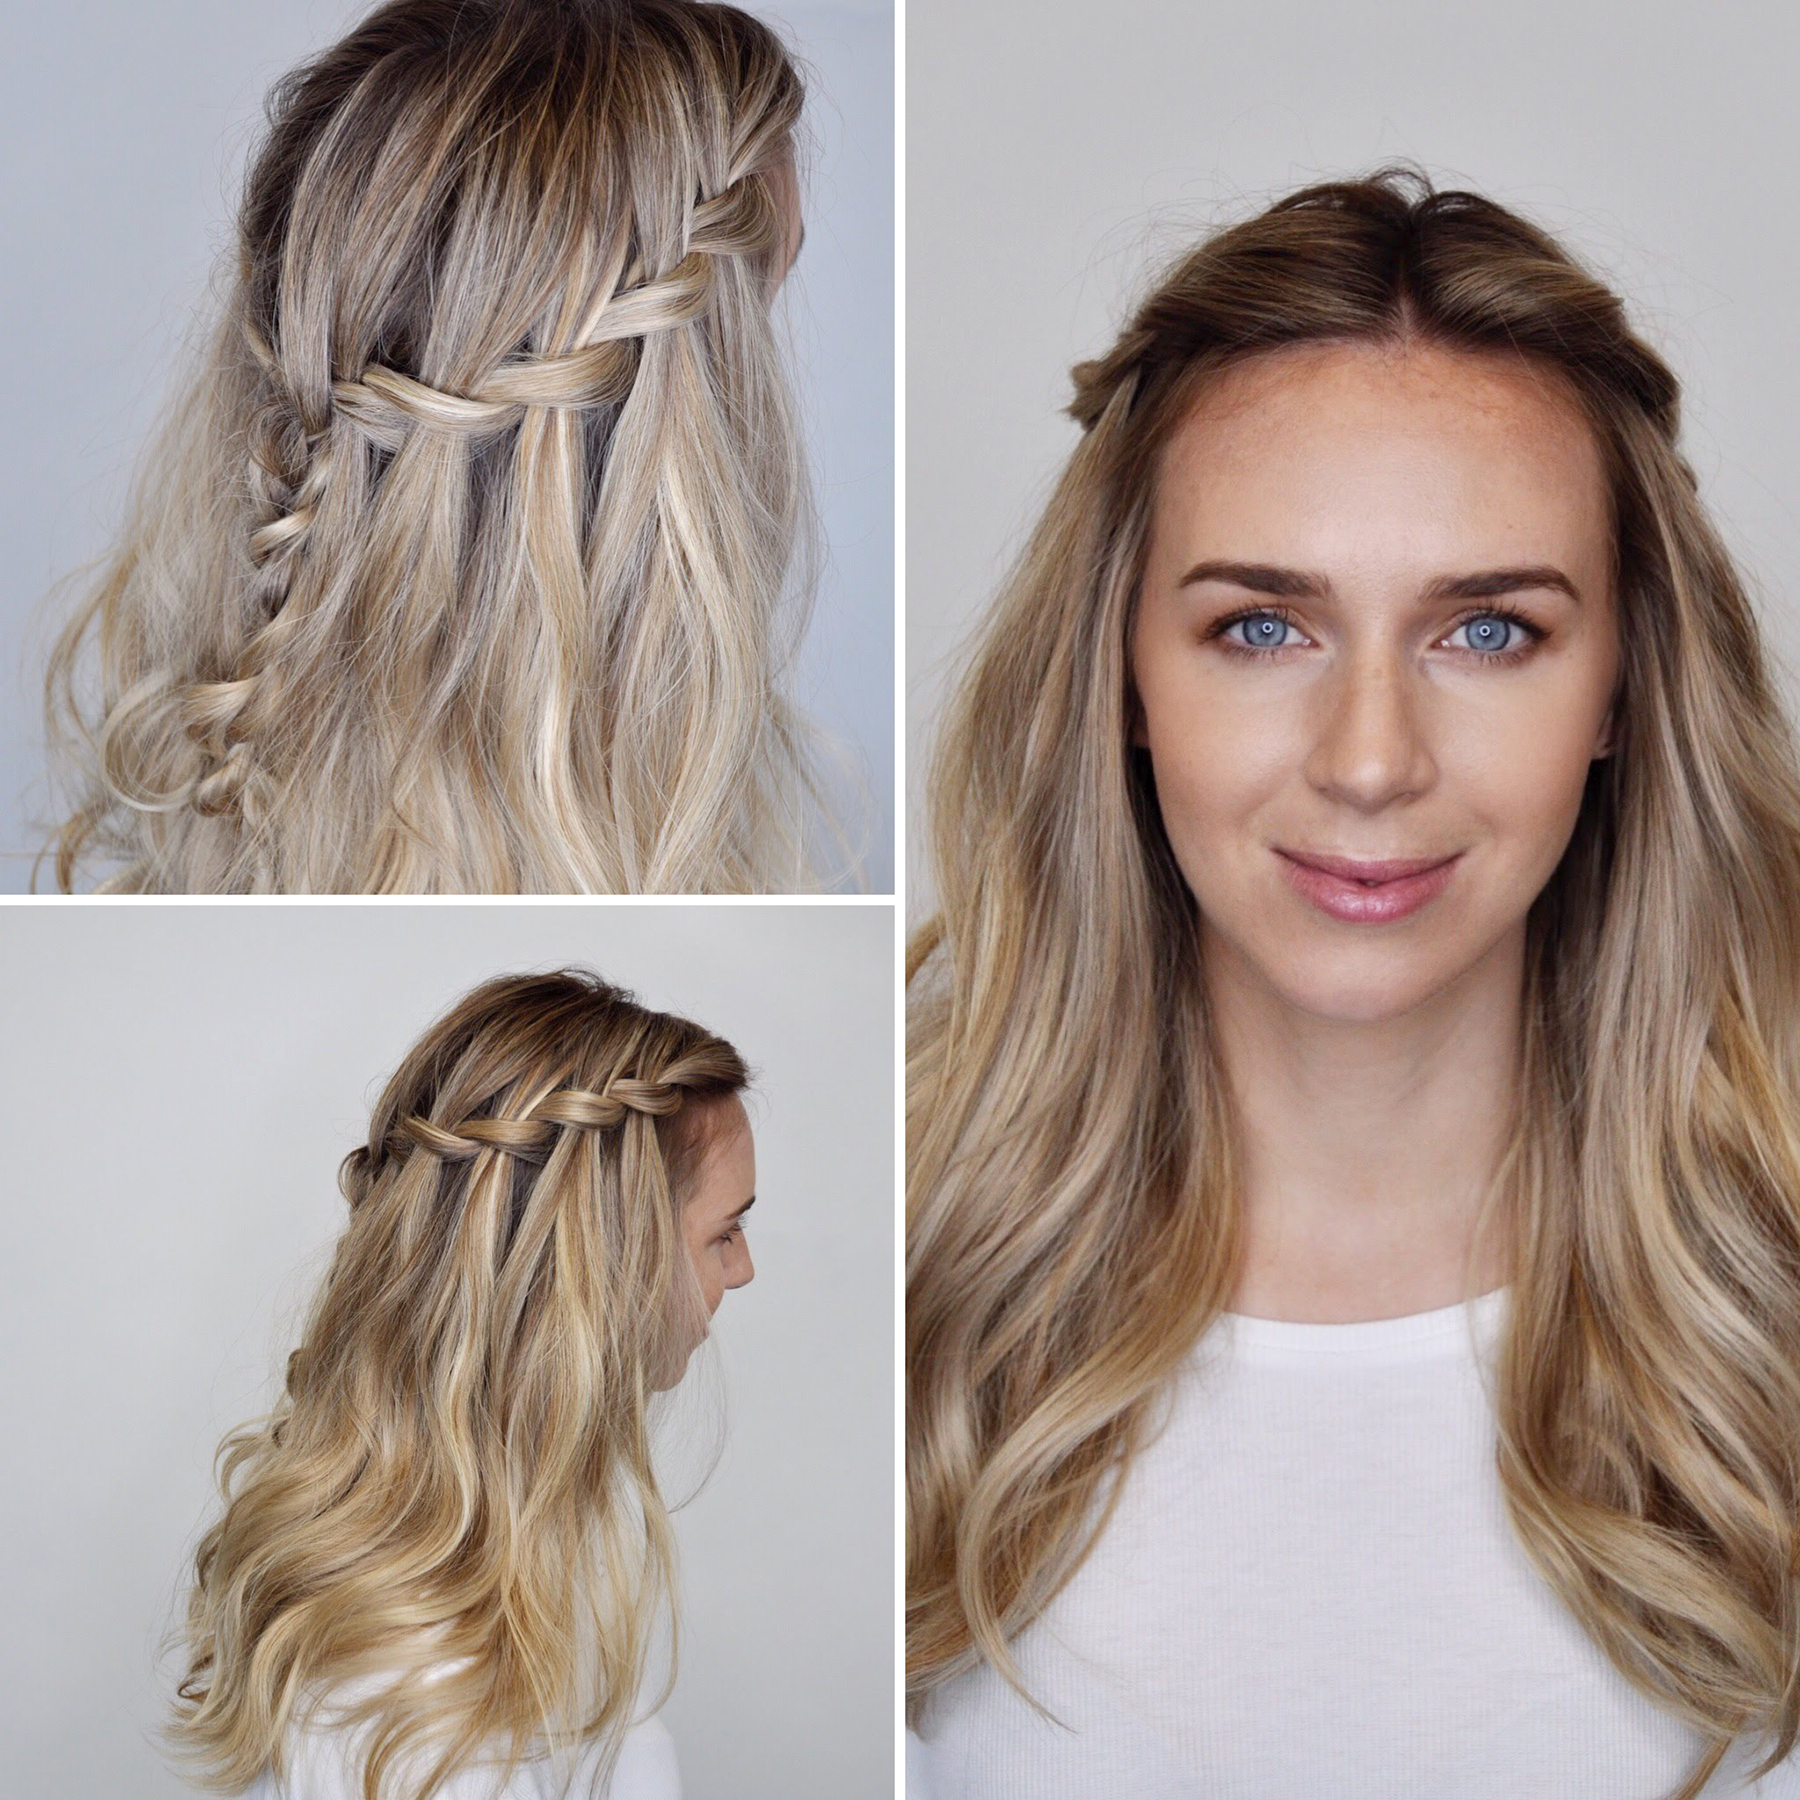 Real Simple Within Trendy Side Part Voluminous Braid Hairstyles (View 13 of 20)